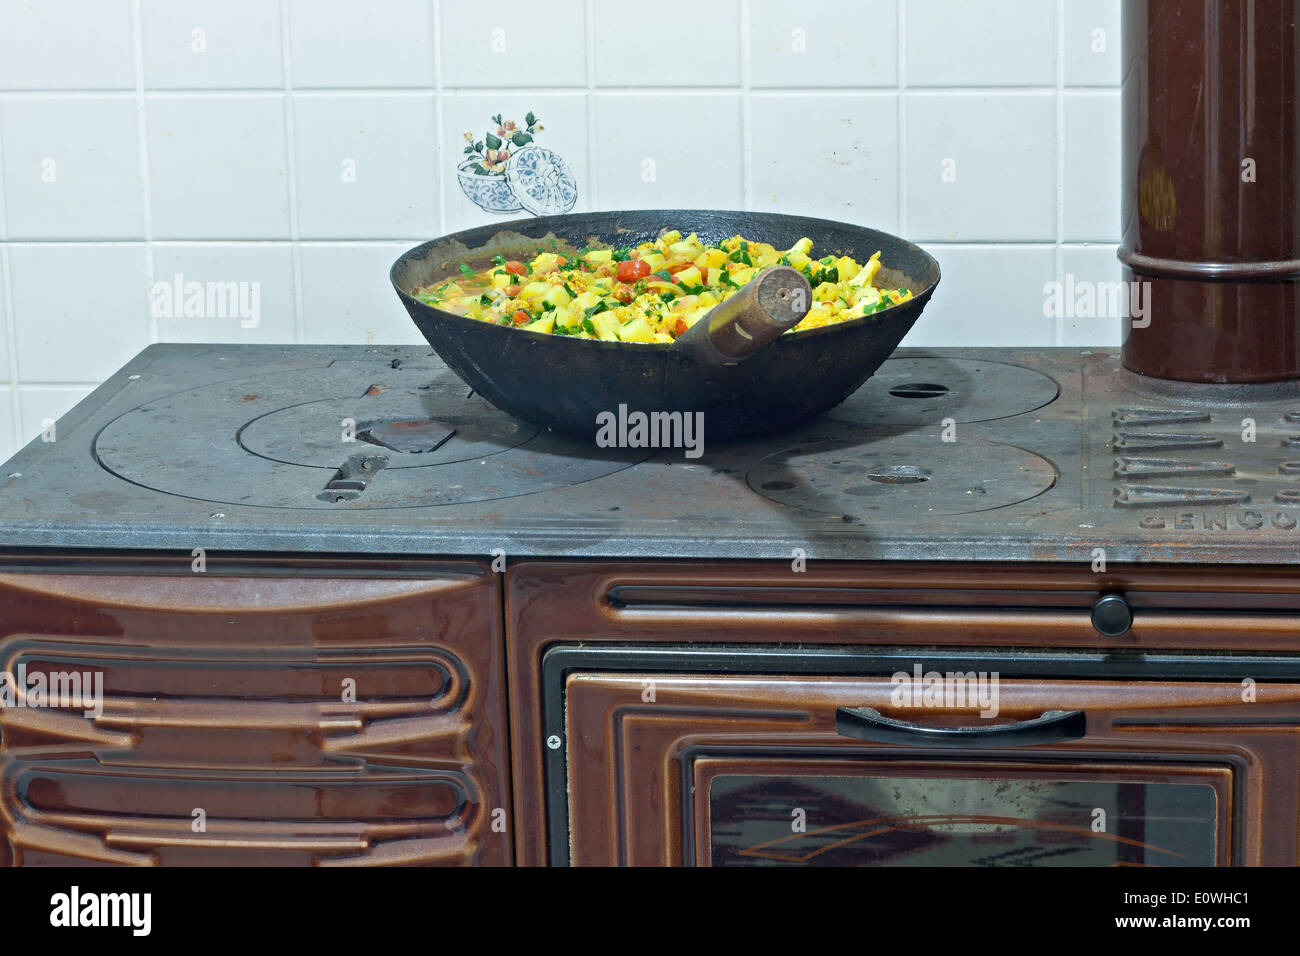 Cooking a vegetable dish on wood burning cast iron oven - Stock Image